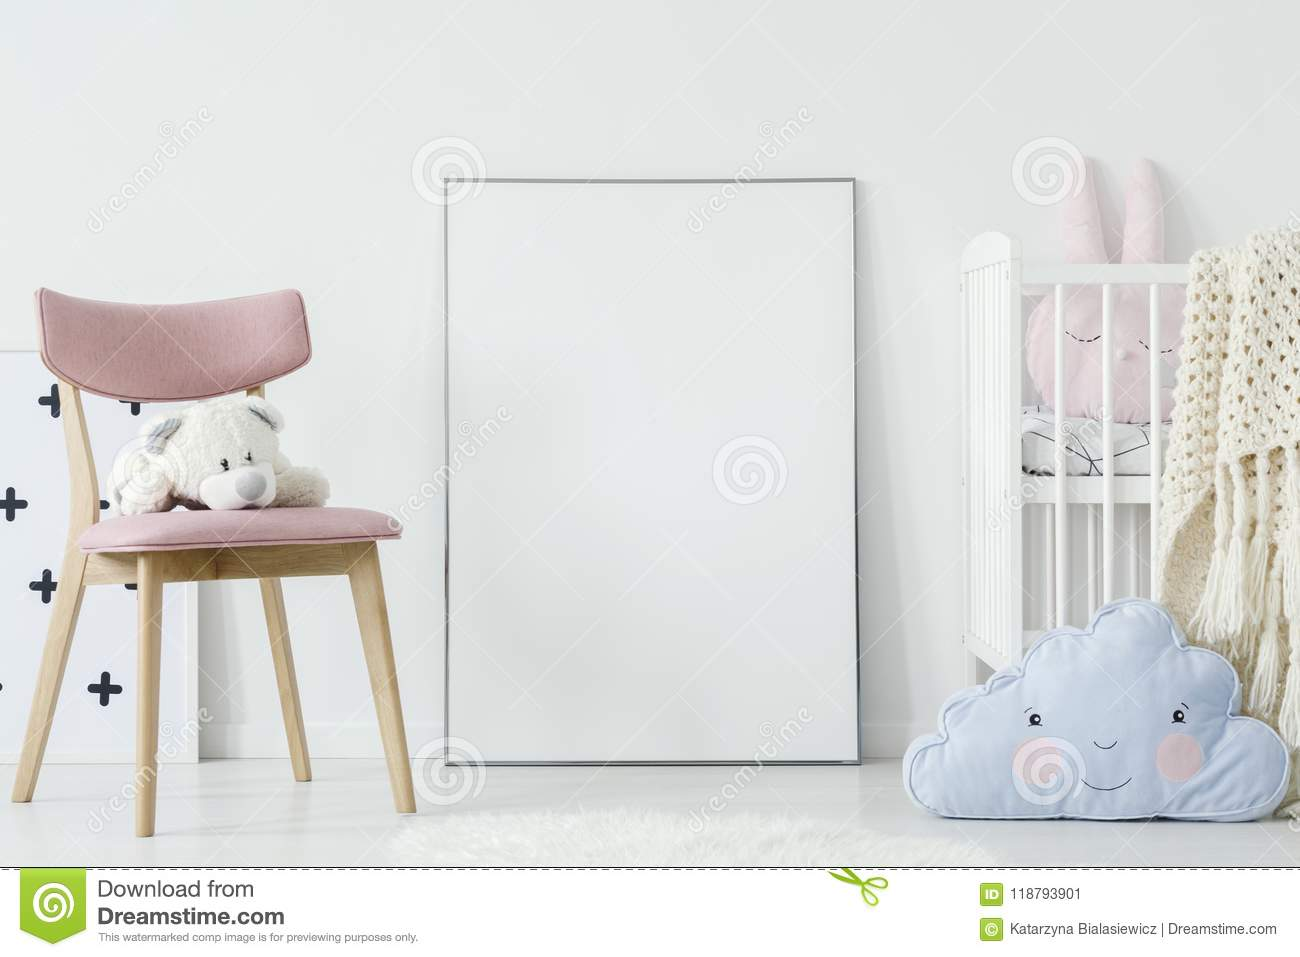 Plush toy on pink chair and blue pillow in child`s room interior